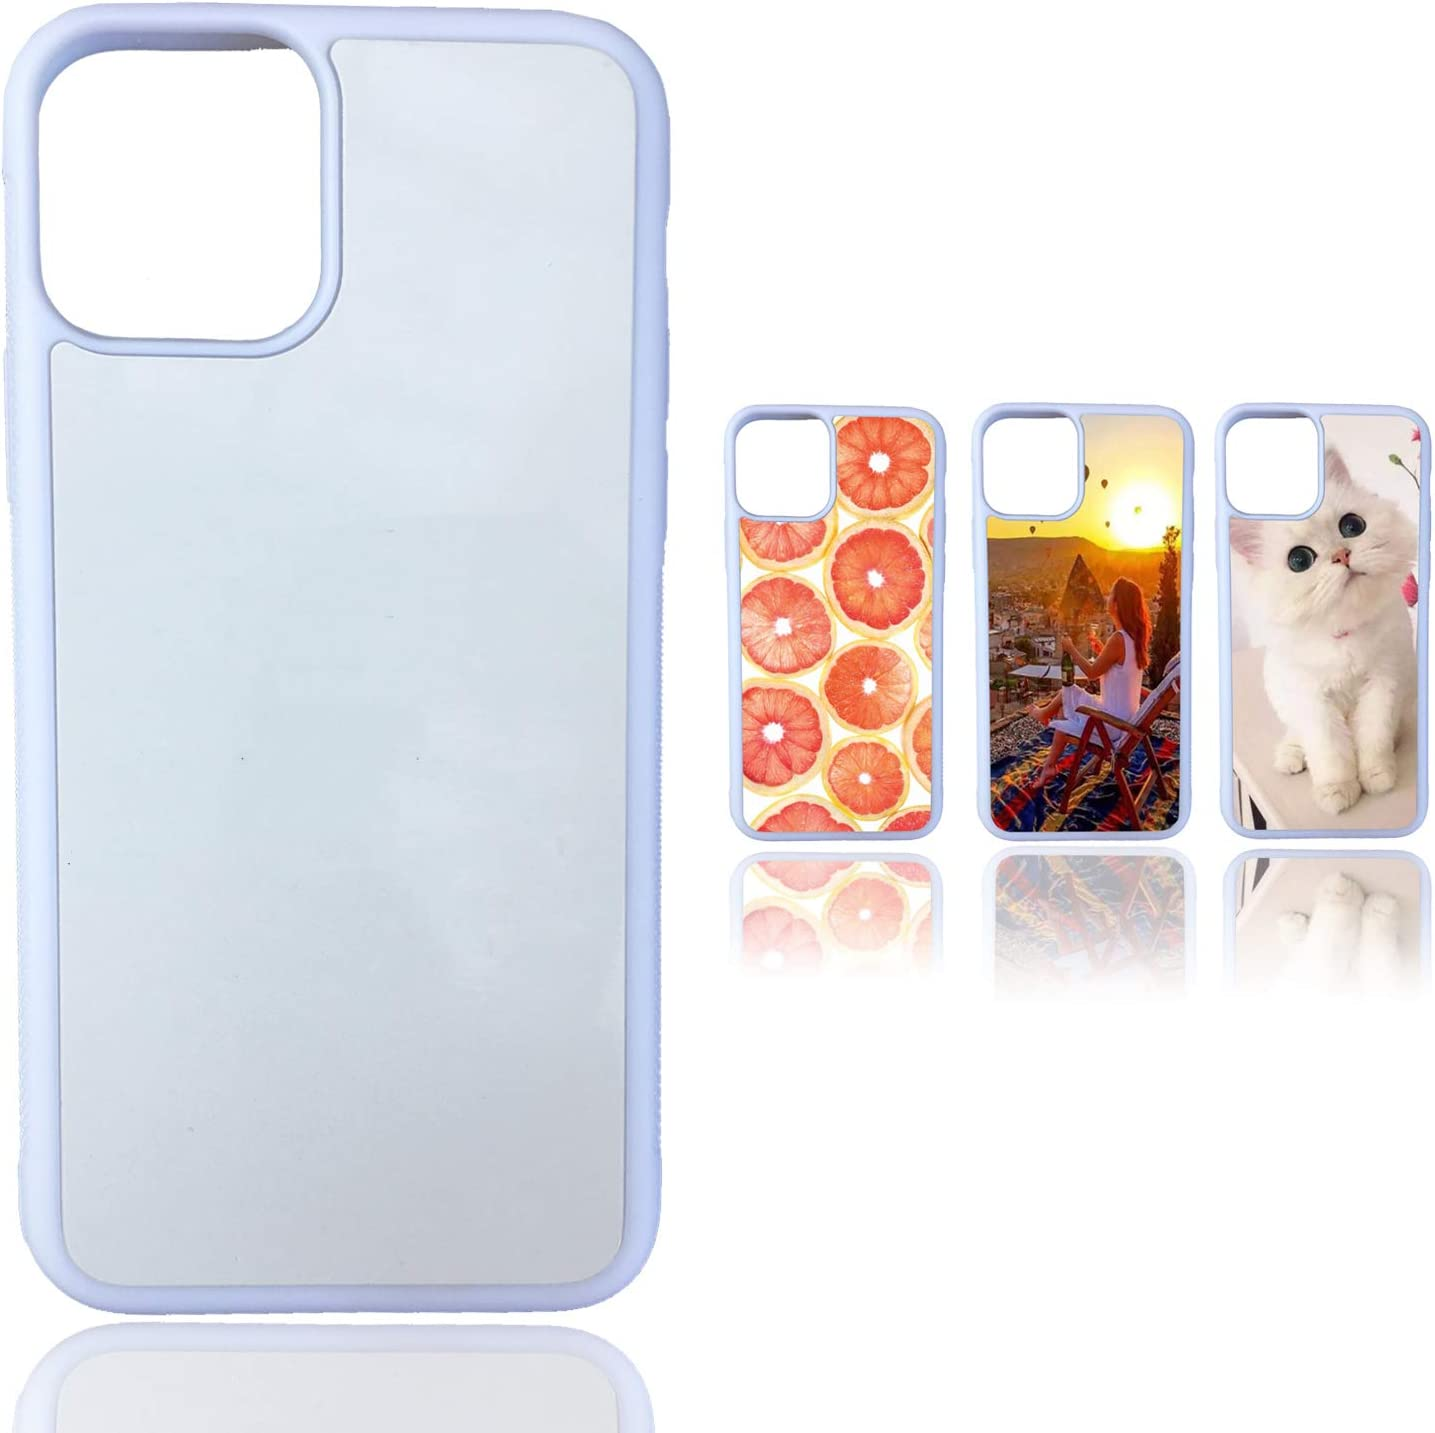 JUSTRY 10 PCS Sublimation Blanks Phone Case Cases Covers White Compatible with Apple iPhone 11 Pro Max, 6.5-Inch (2019) Blank Printable Phone Case for DIY Soft Rubber Protective Slim Case Anti-Slip